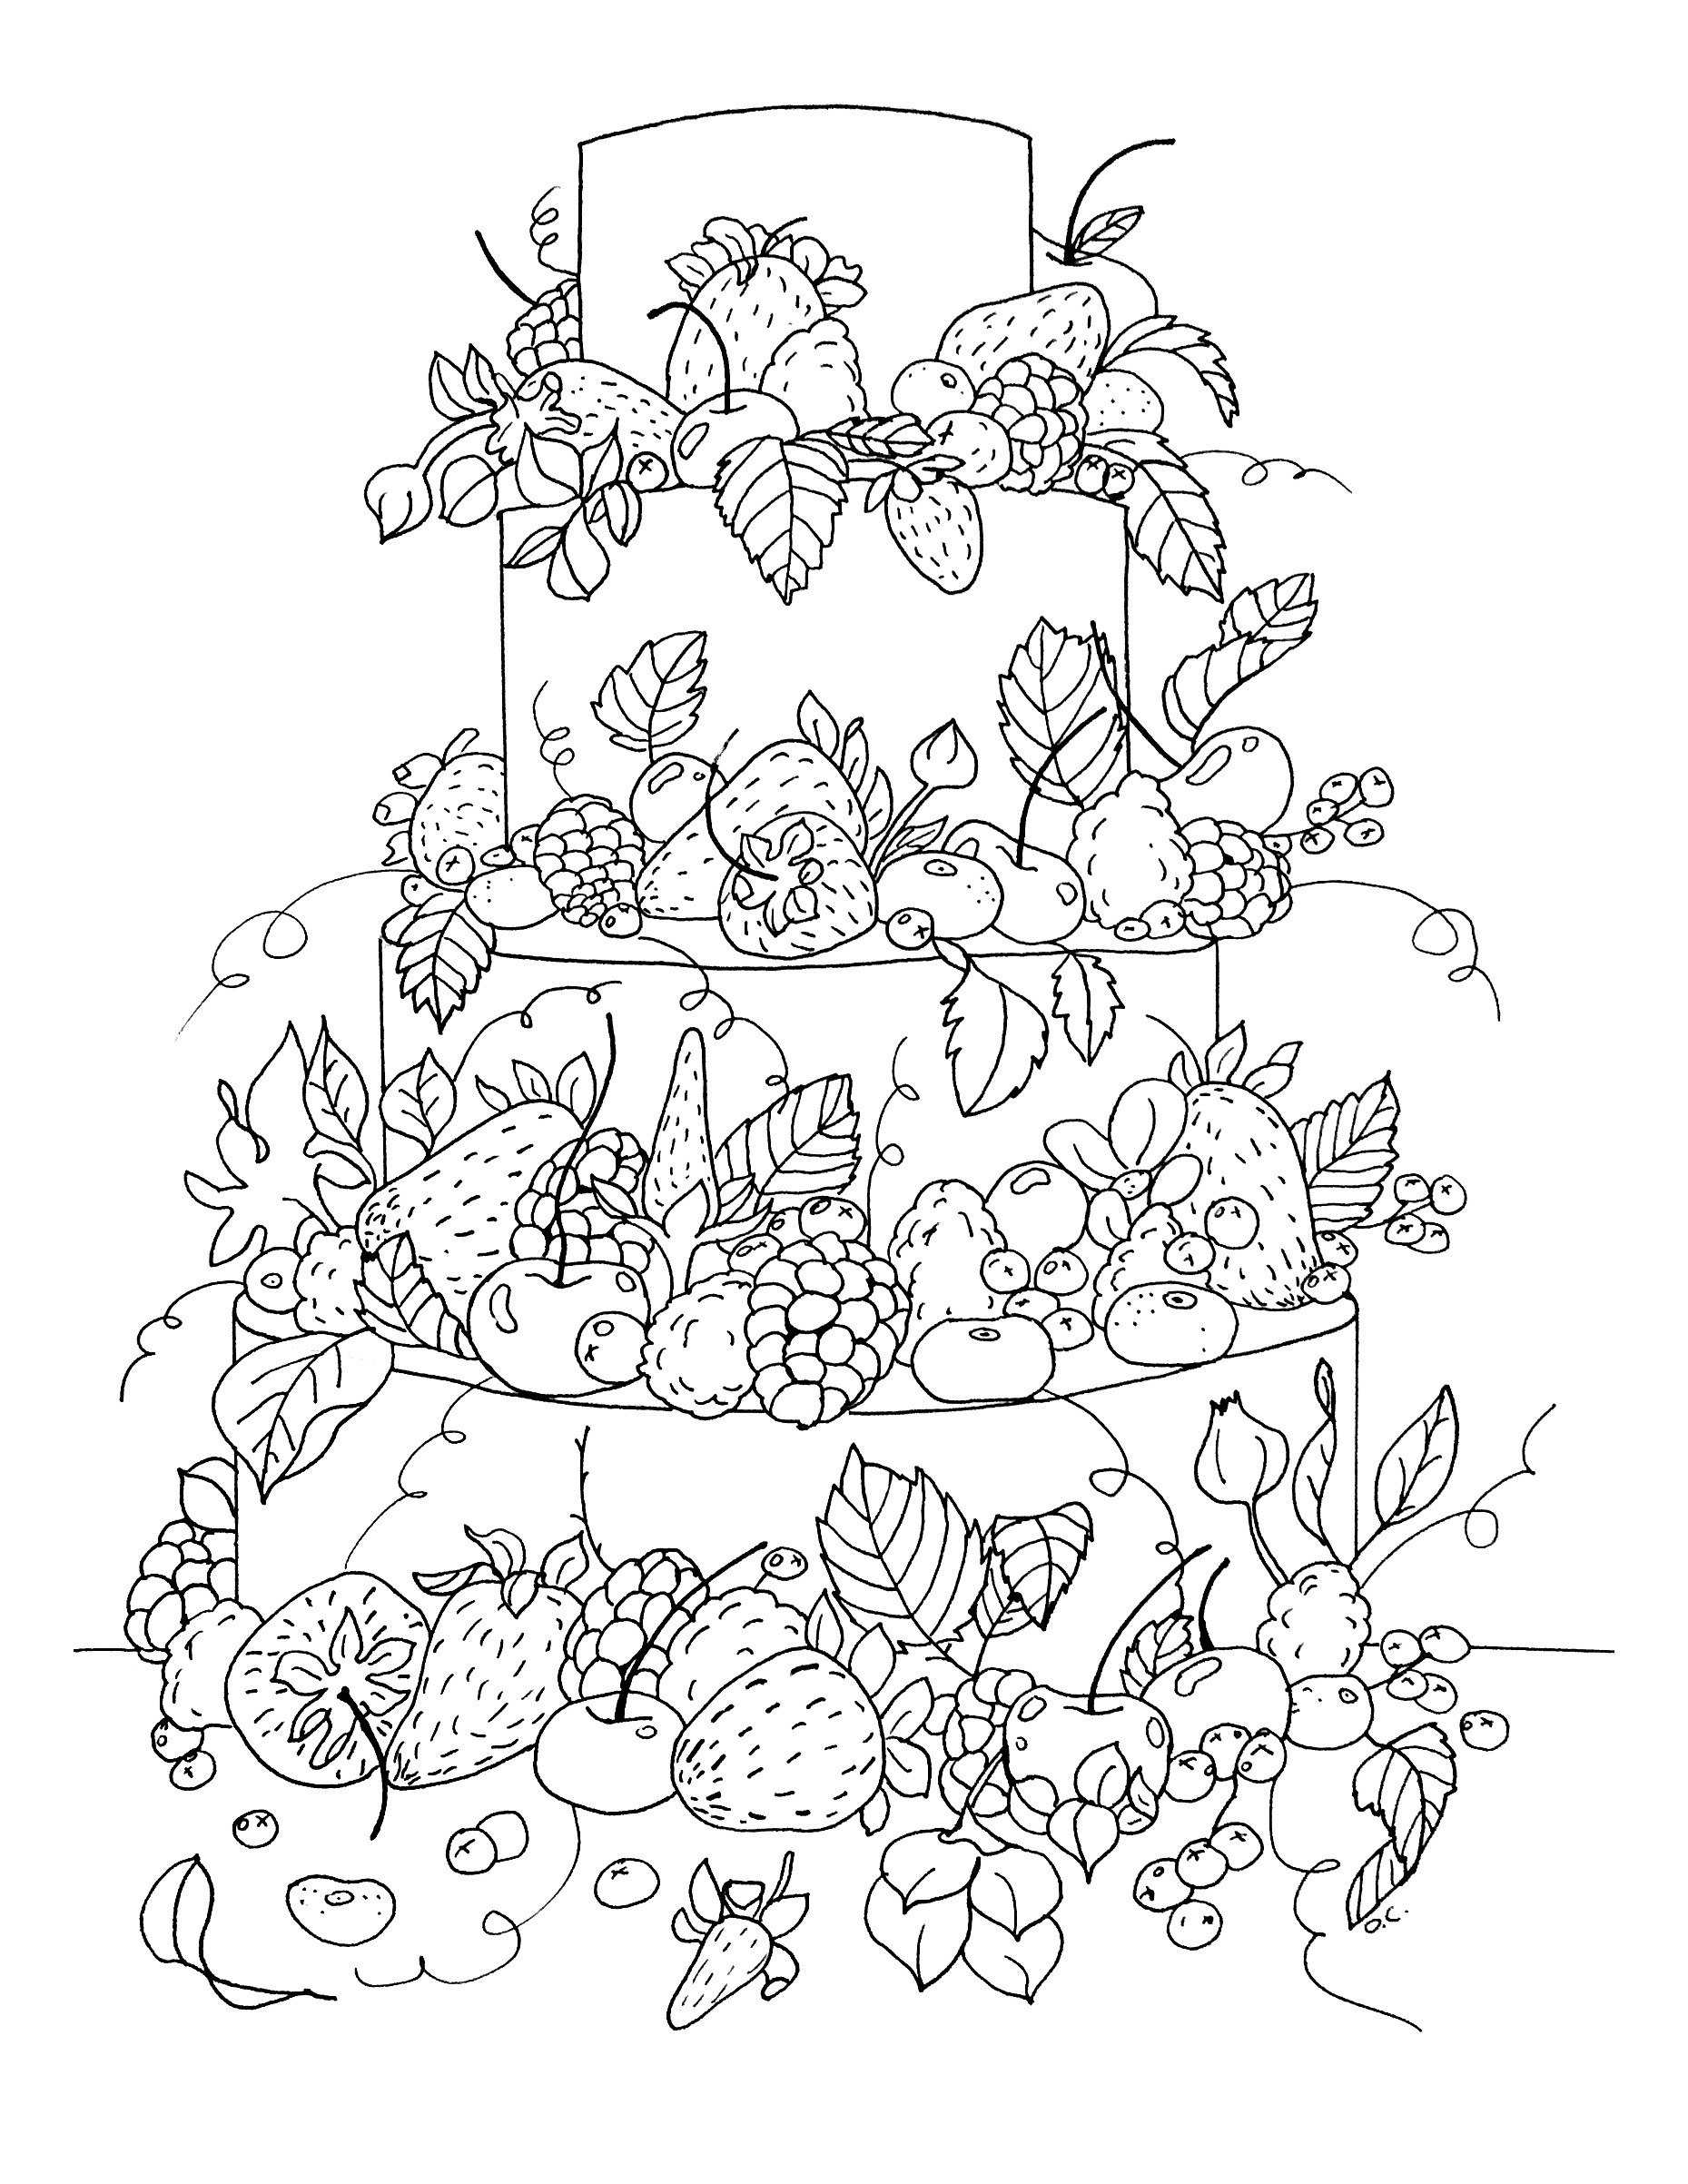 Best ideas about Fruit Coloring Pages For Adults . Save or Pin Cup Cakes Coloriages difficiles pour adultes coloriage Now.